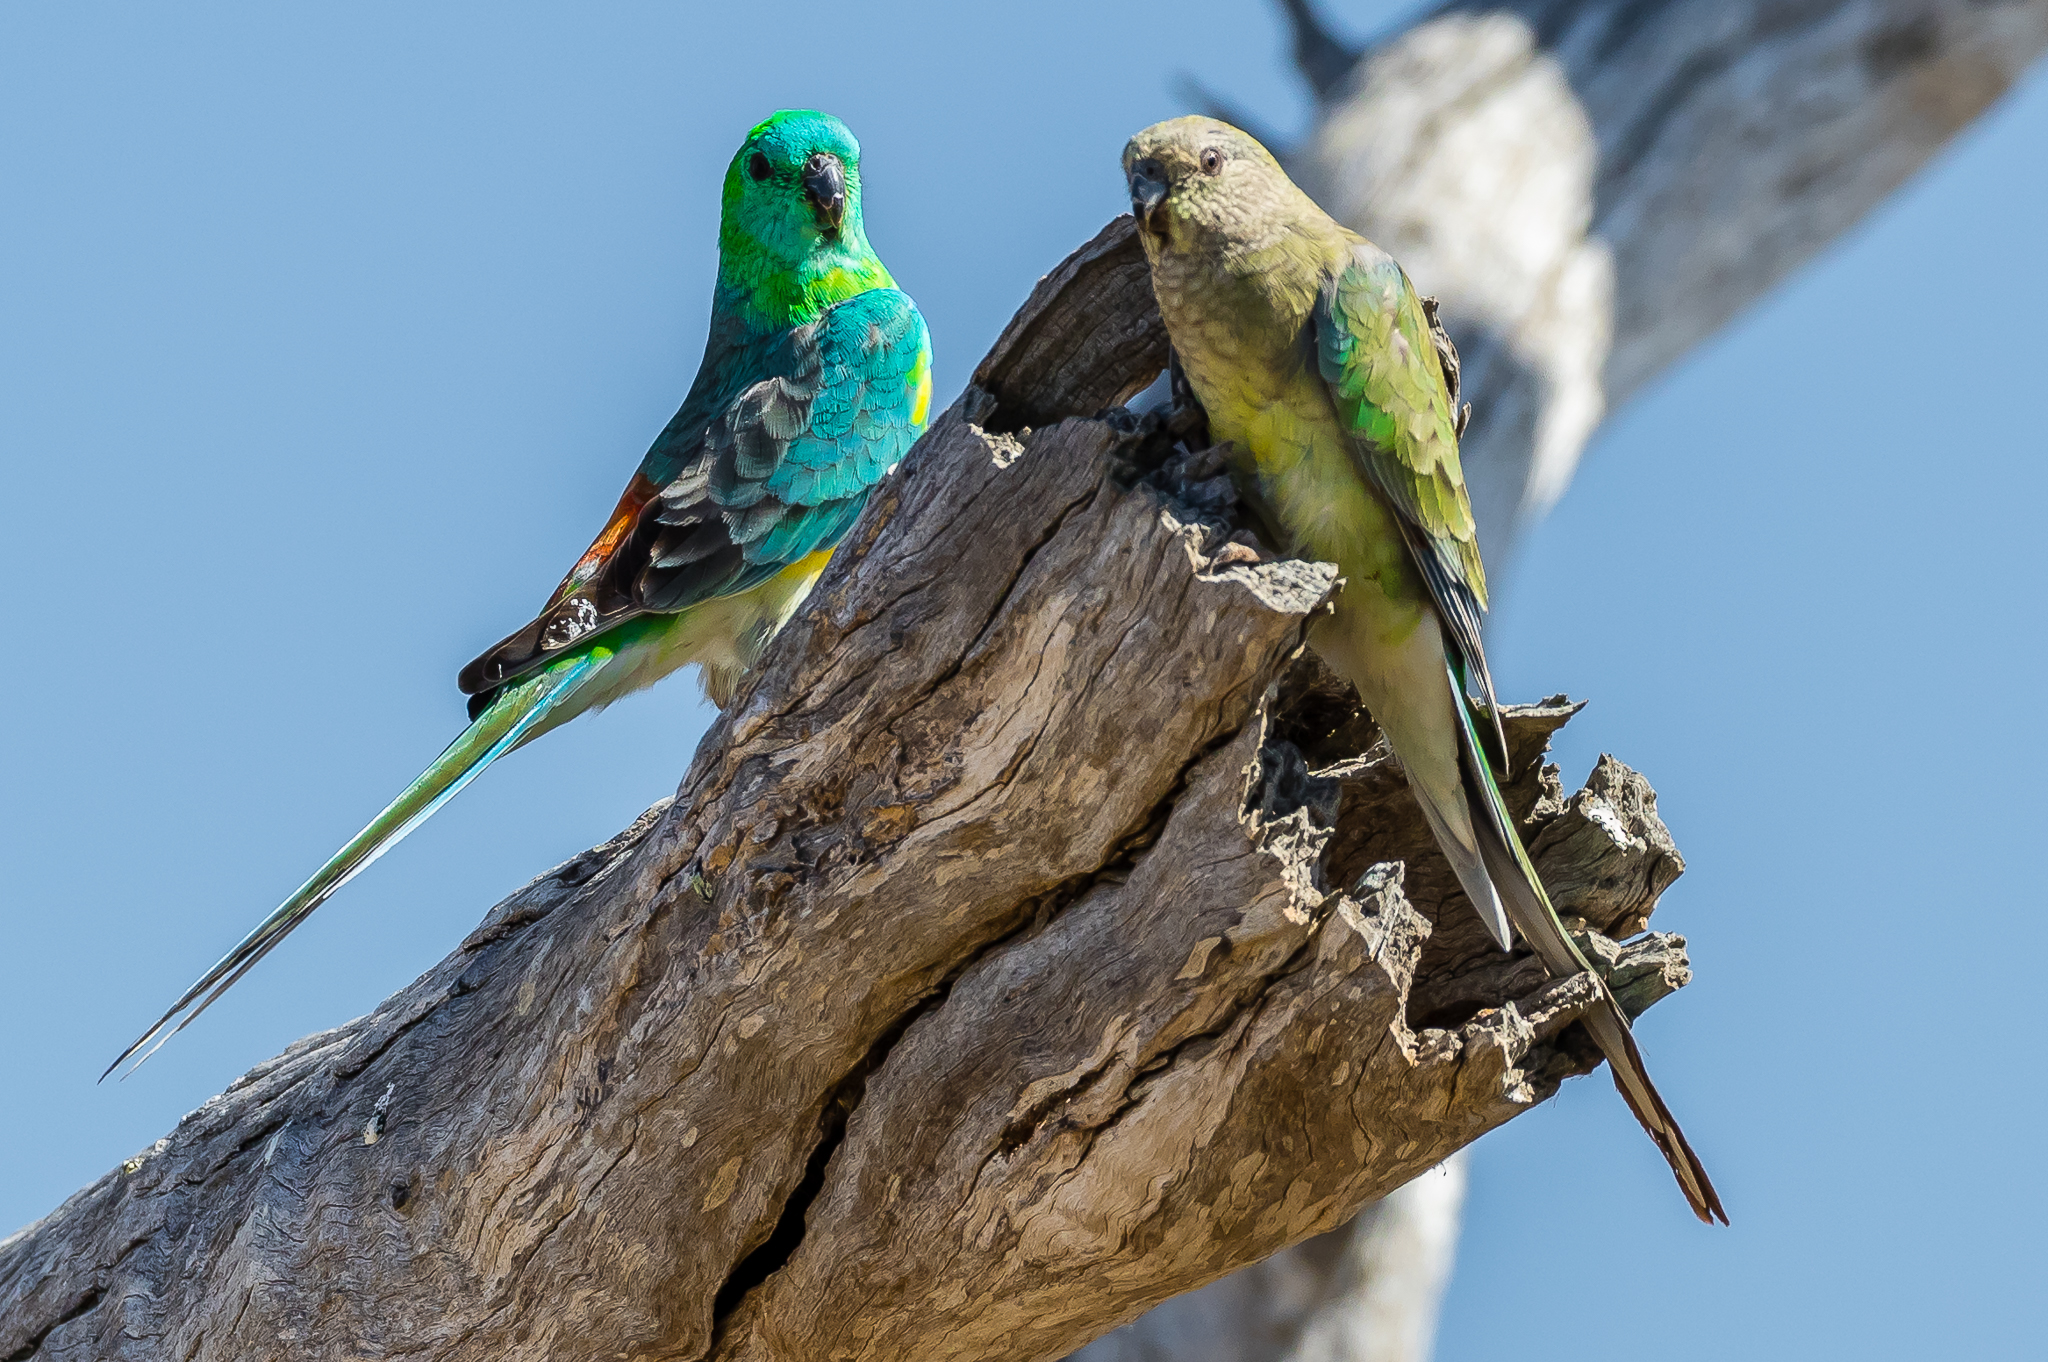 Red-rumped Parrots take possession of valuable real estate for nesting, a vacant hollow in a dead tree. As land was cleared dead trees provided homes for parrots, but these trees have not been replaced for future generations. Red-rumped Parrots feed on seeds from the ground as well as seeds, fruits and flowers of trees.